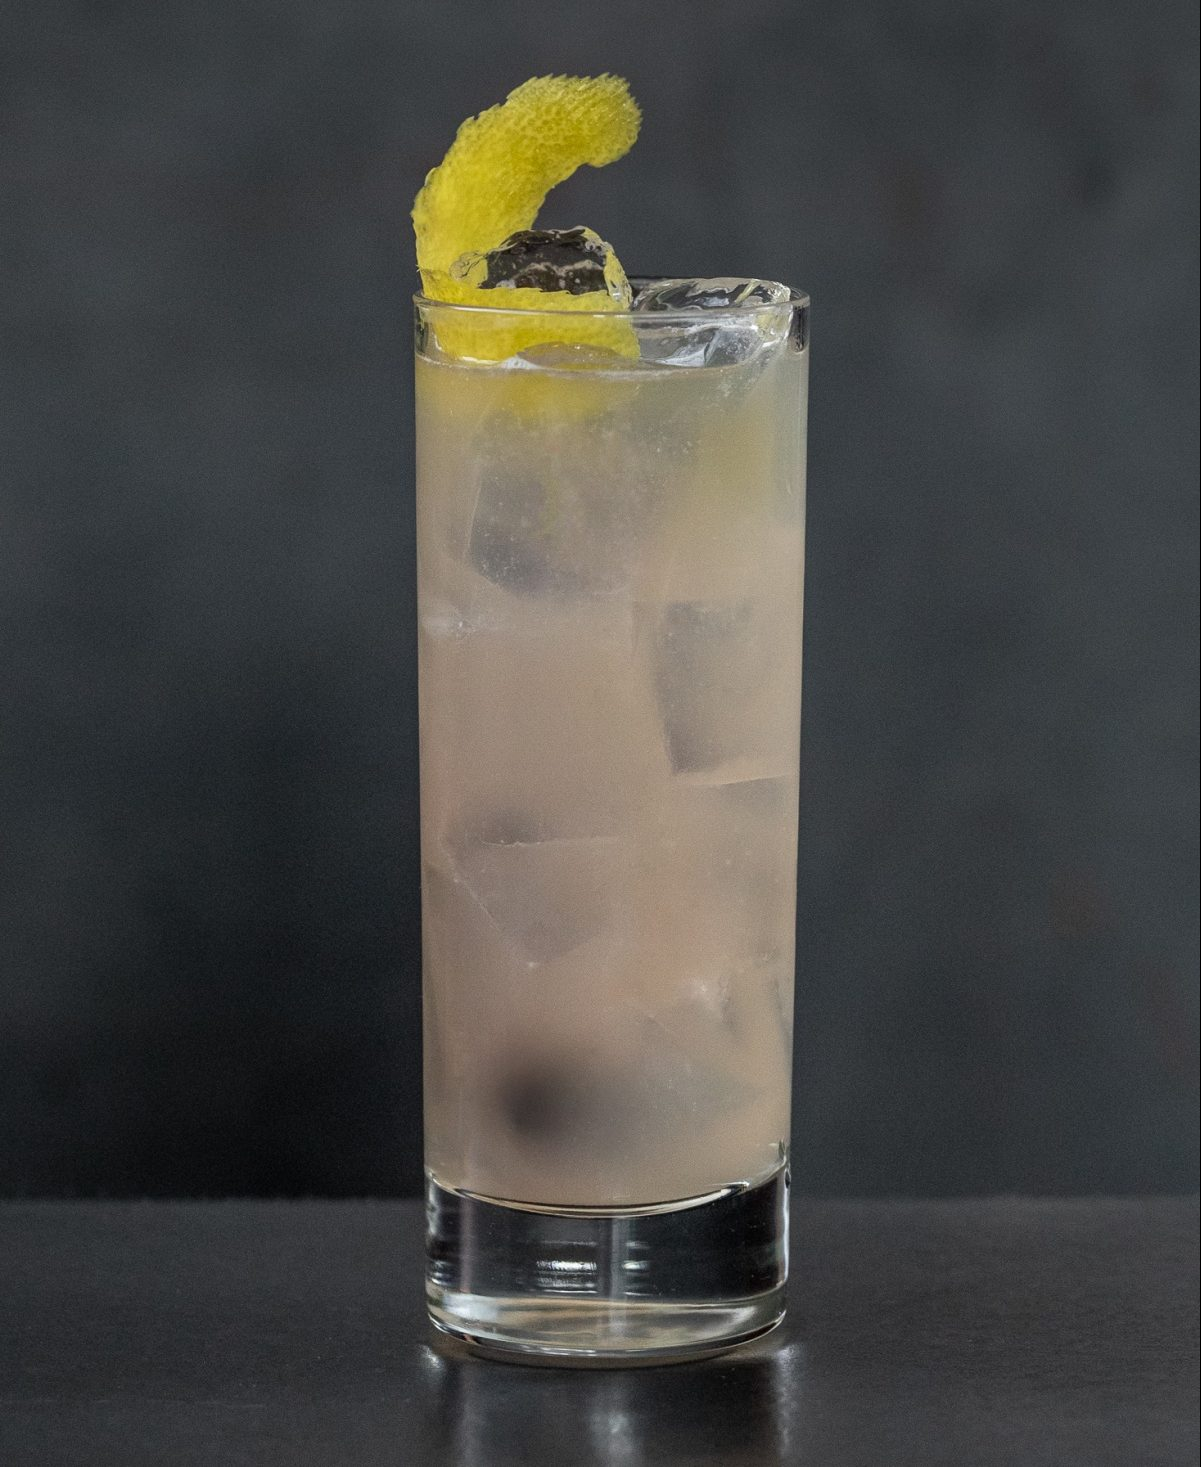 09-2019_OTOTO_Cocktail_Final Images_Web-Res_08